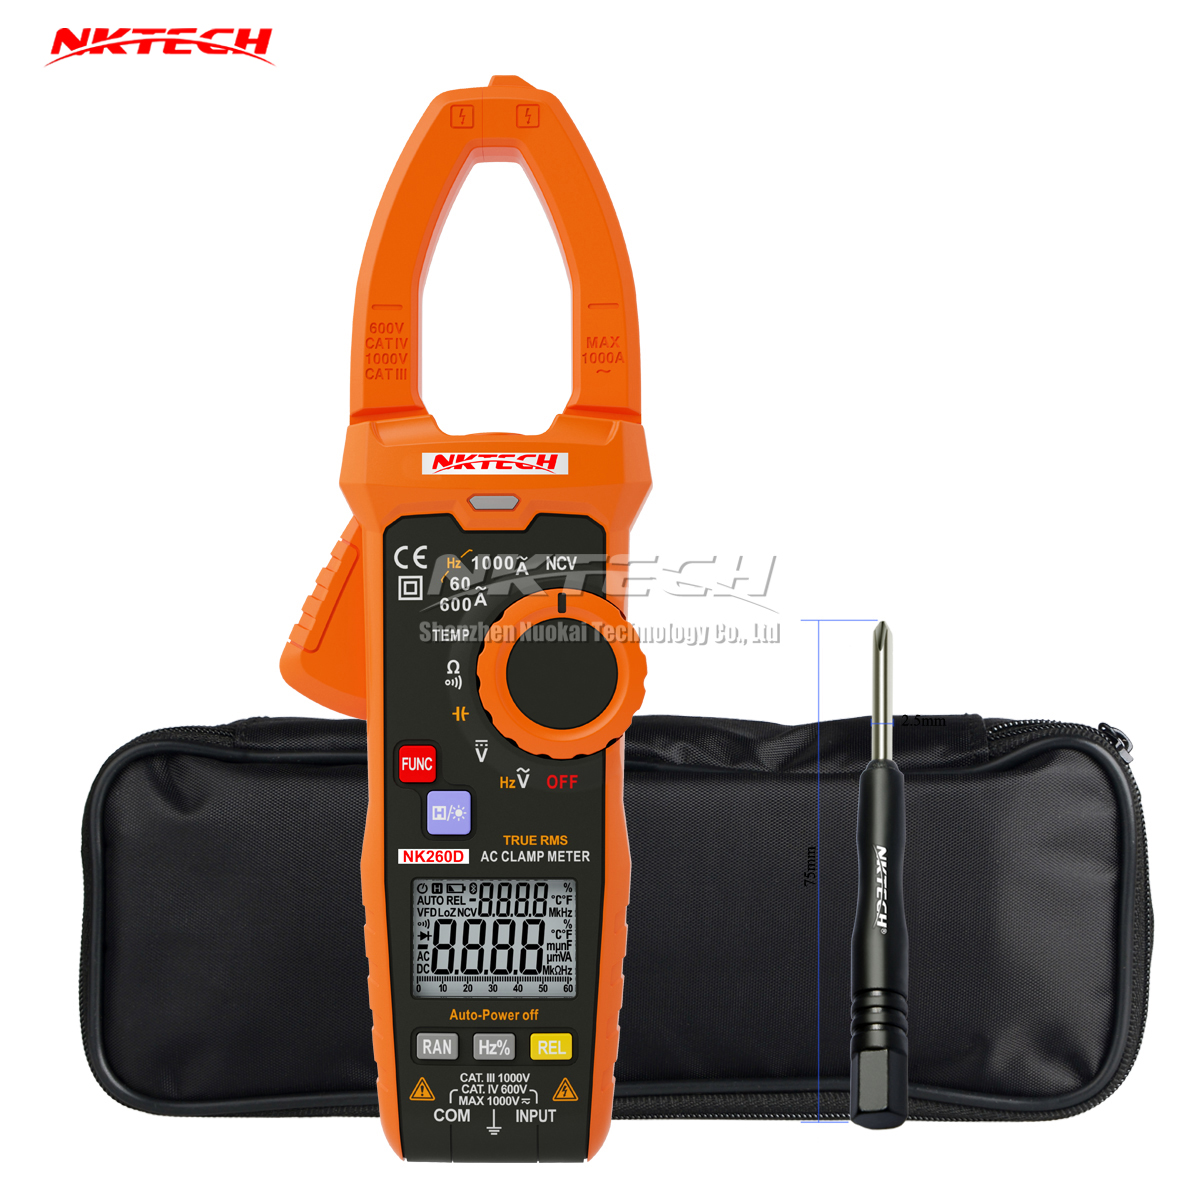 NKTECH NK260D Ture RMS Digital Clamp Meter Temperature AC Voltage Current DCV 1000V Resistance Frequency Capacitance 35mm Jaw uxcell digital multimeter ac voltage current resistance capacitance frequency temperature tester meter 600mv 6v 60v 600v 1000v